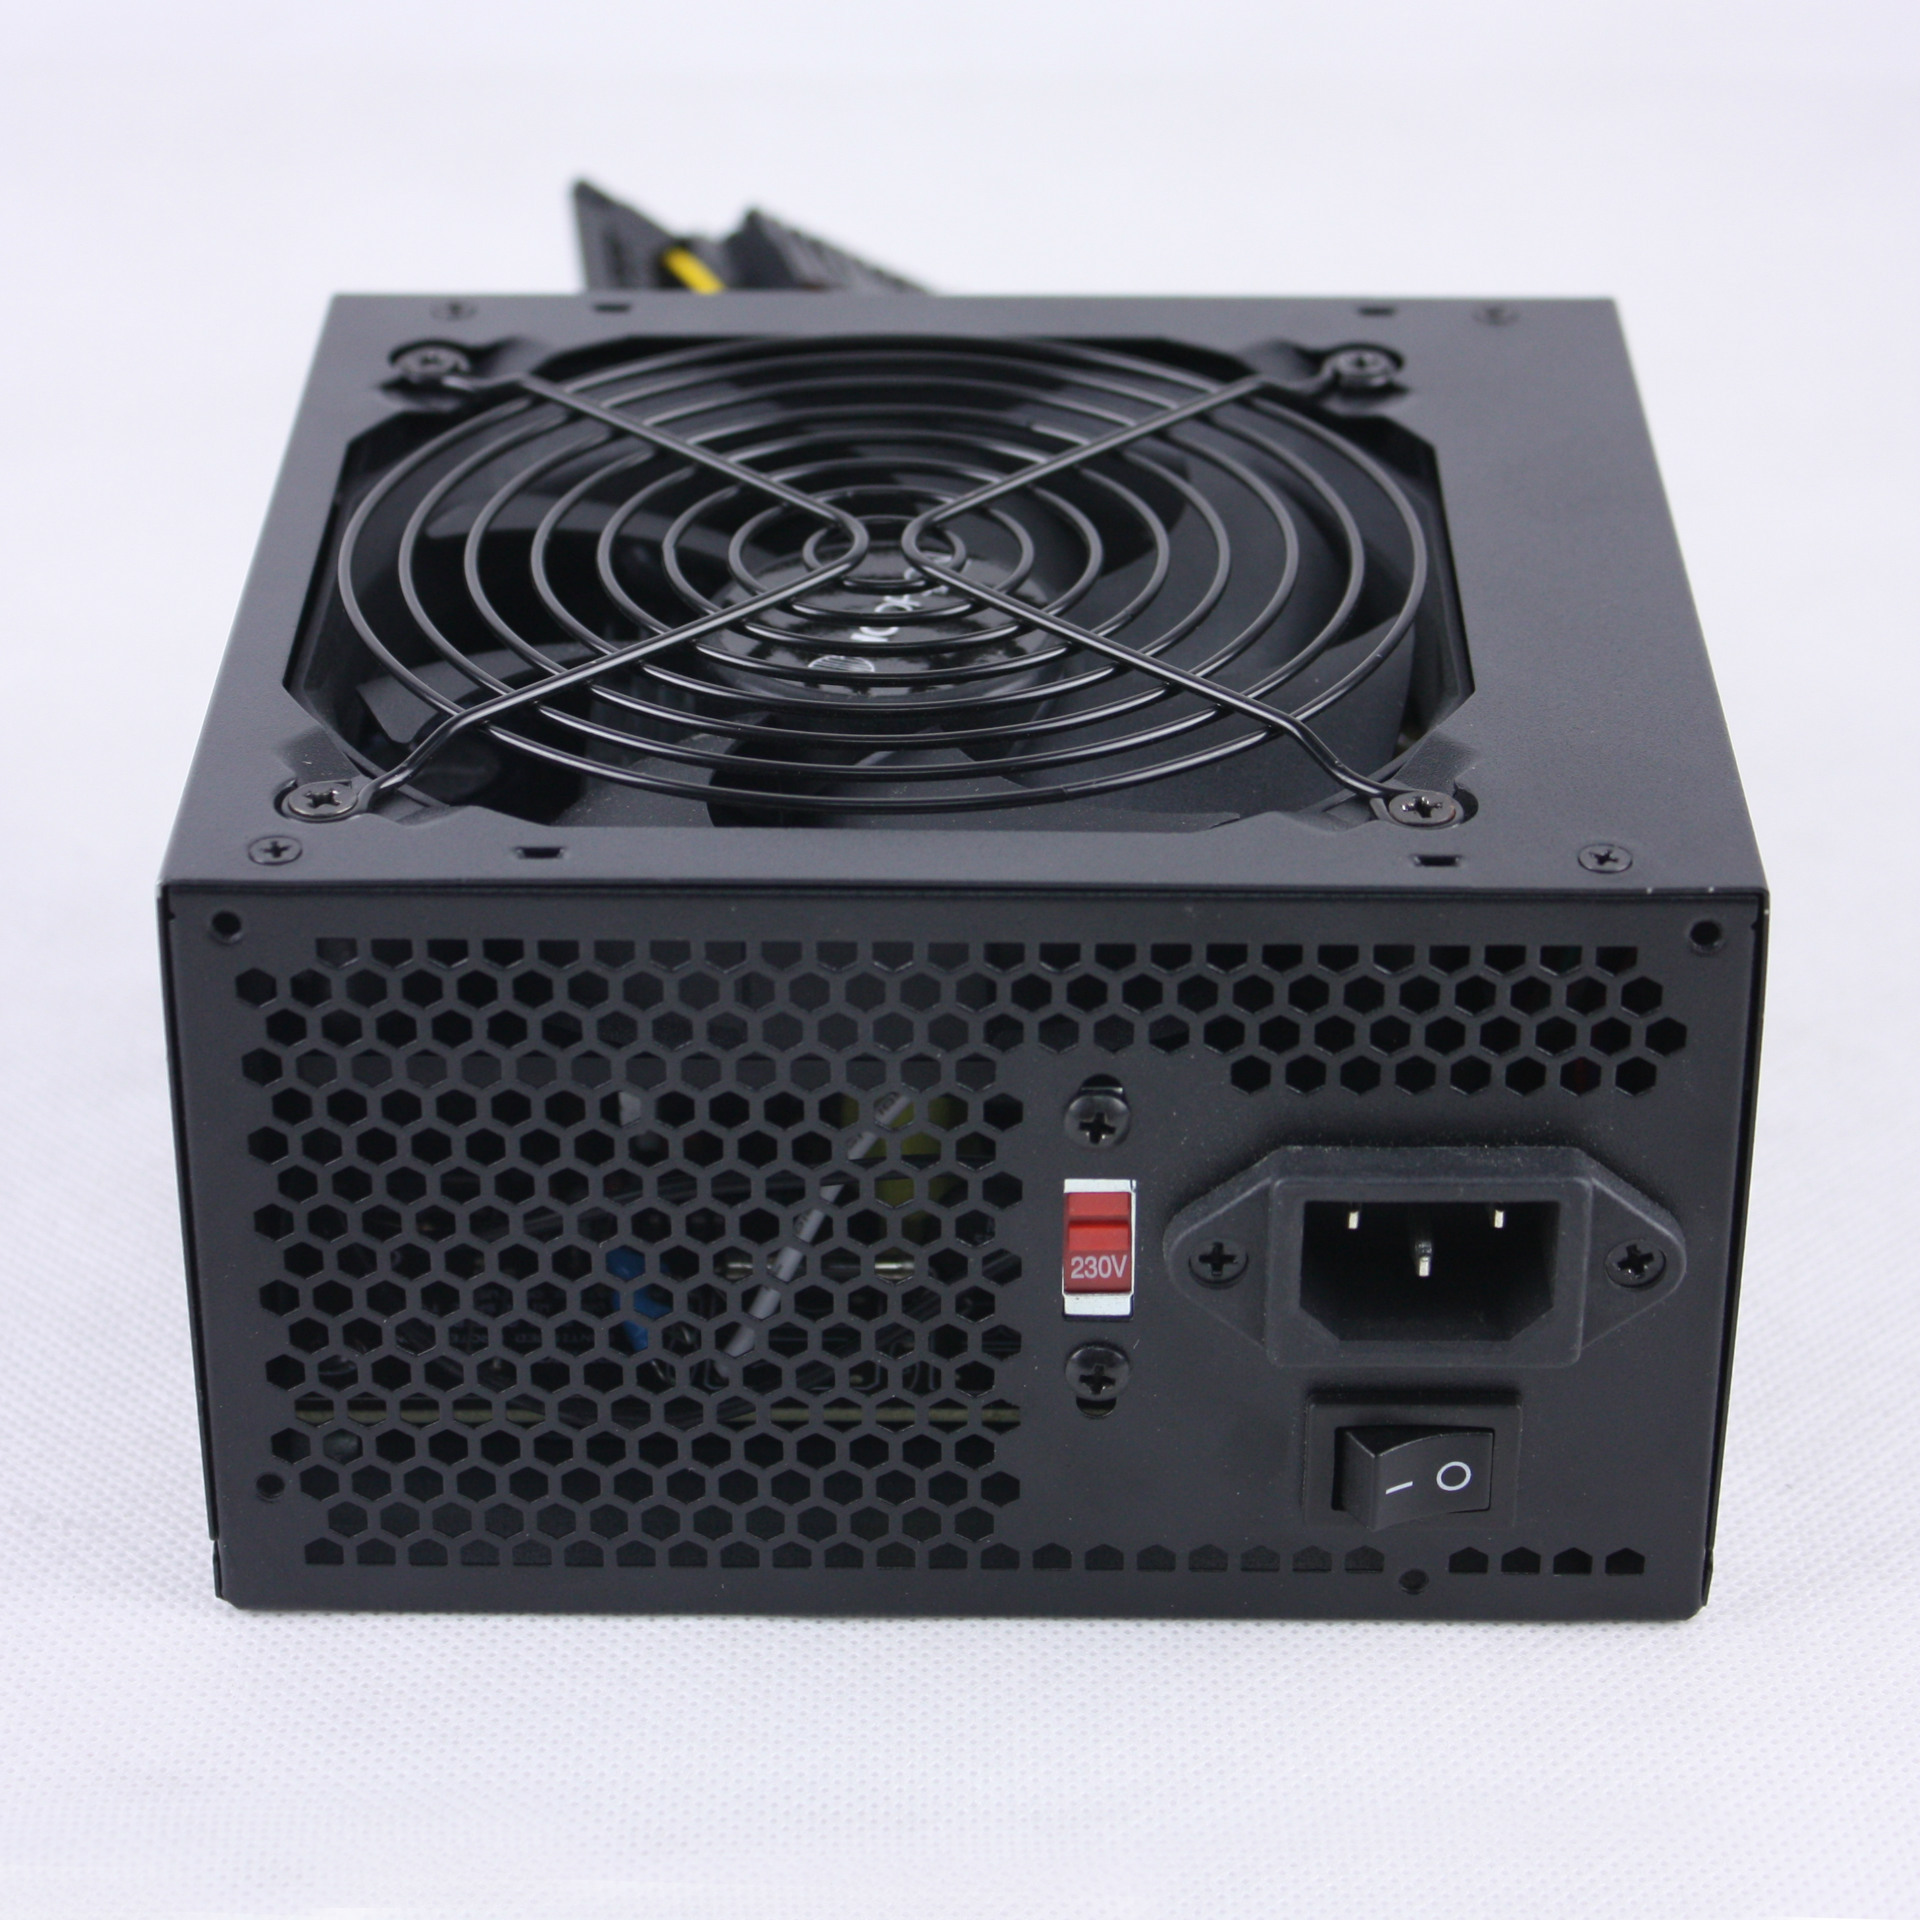 Ordinary Discount 500w Computer Power Supply – PSU 550W 80plus ATX PC power supply – Inloom